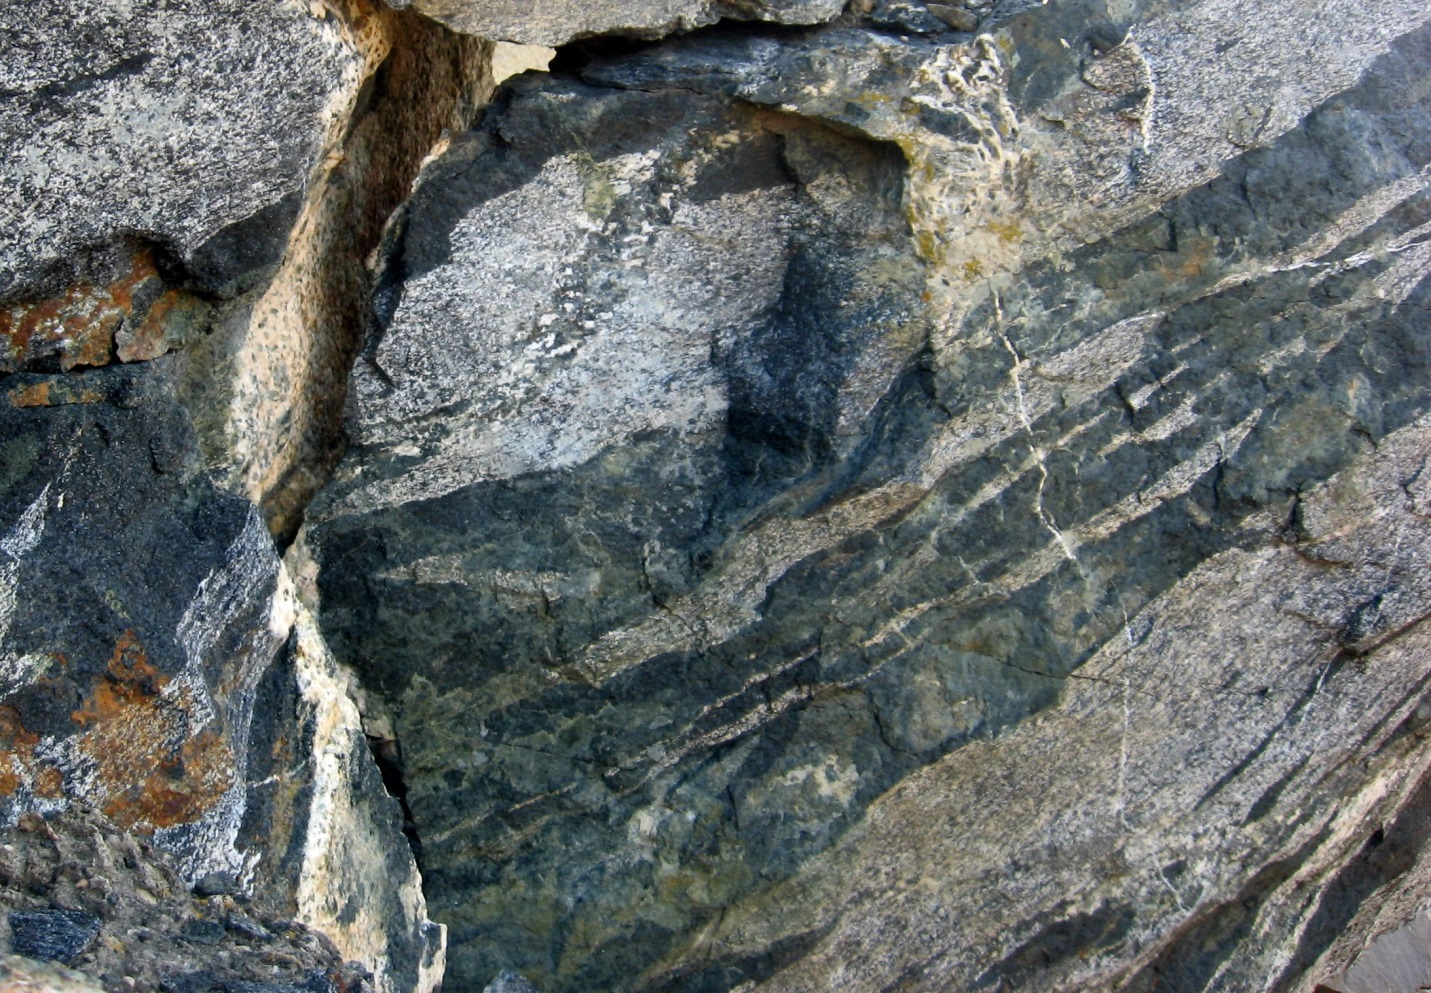 Photograph of Metamorphic rock (gneiss) of the Okanagan Metamorphic and Igneous Complex at Skaha Lake, BC. The dark bands are amphibole-rich, the light bands are feldspar-rich.